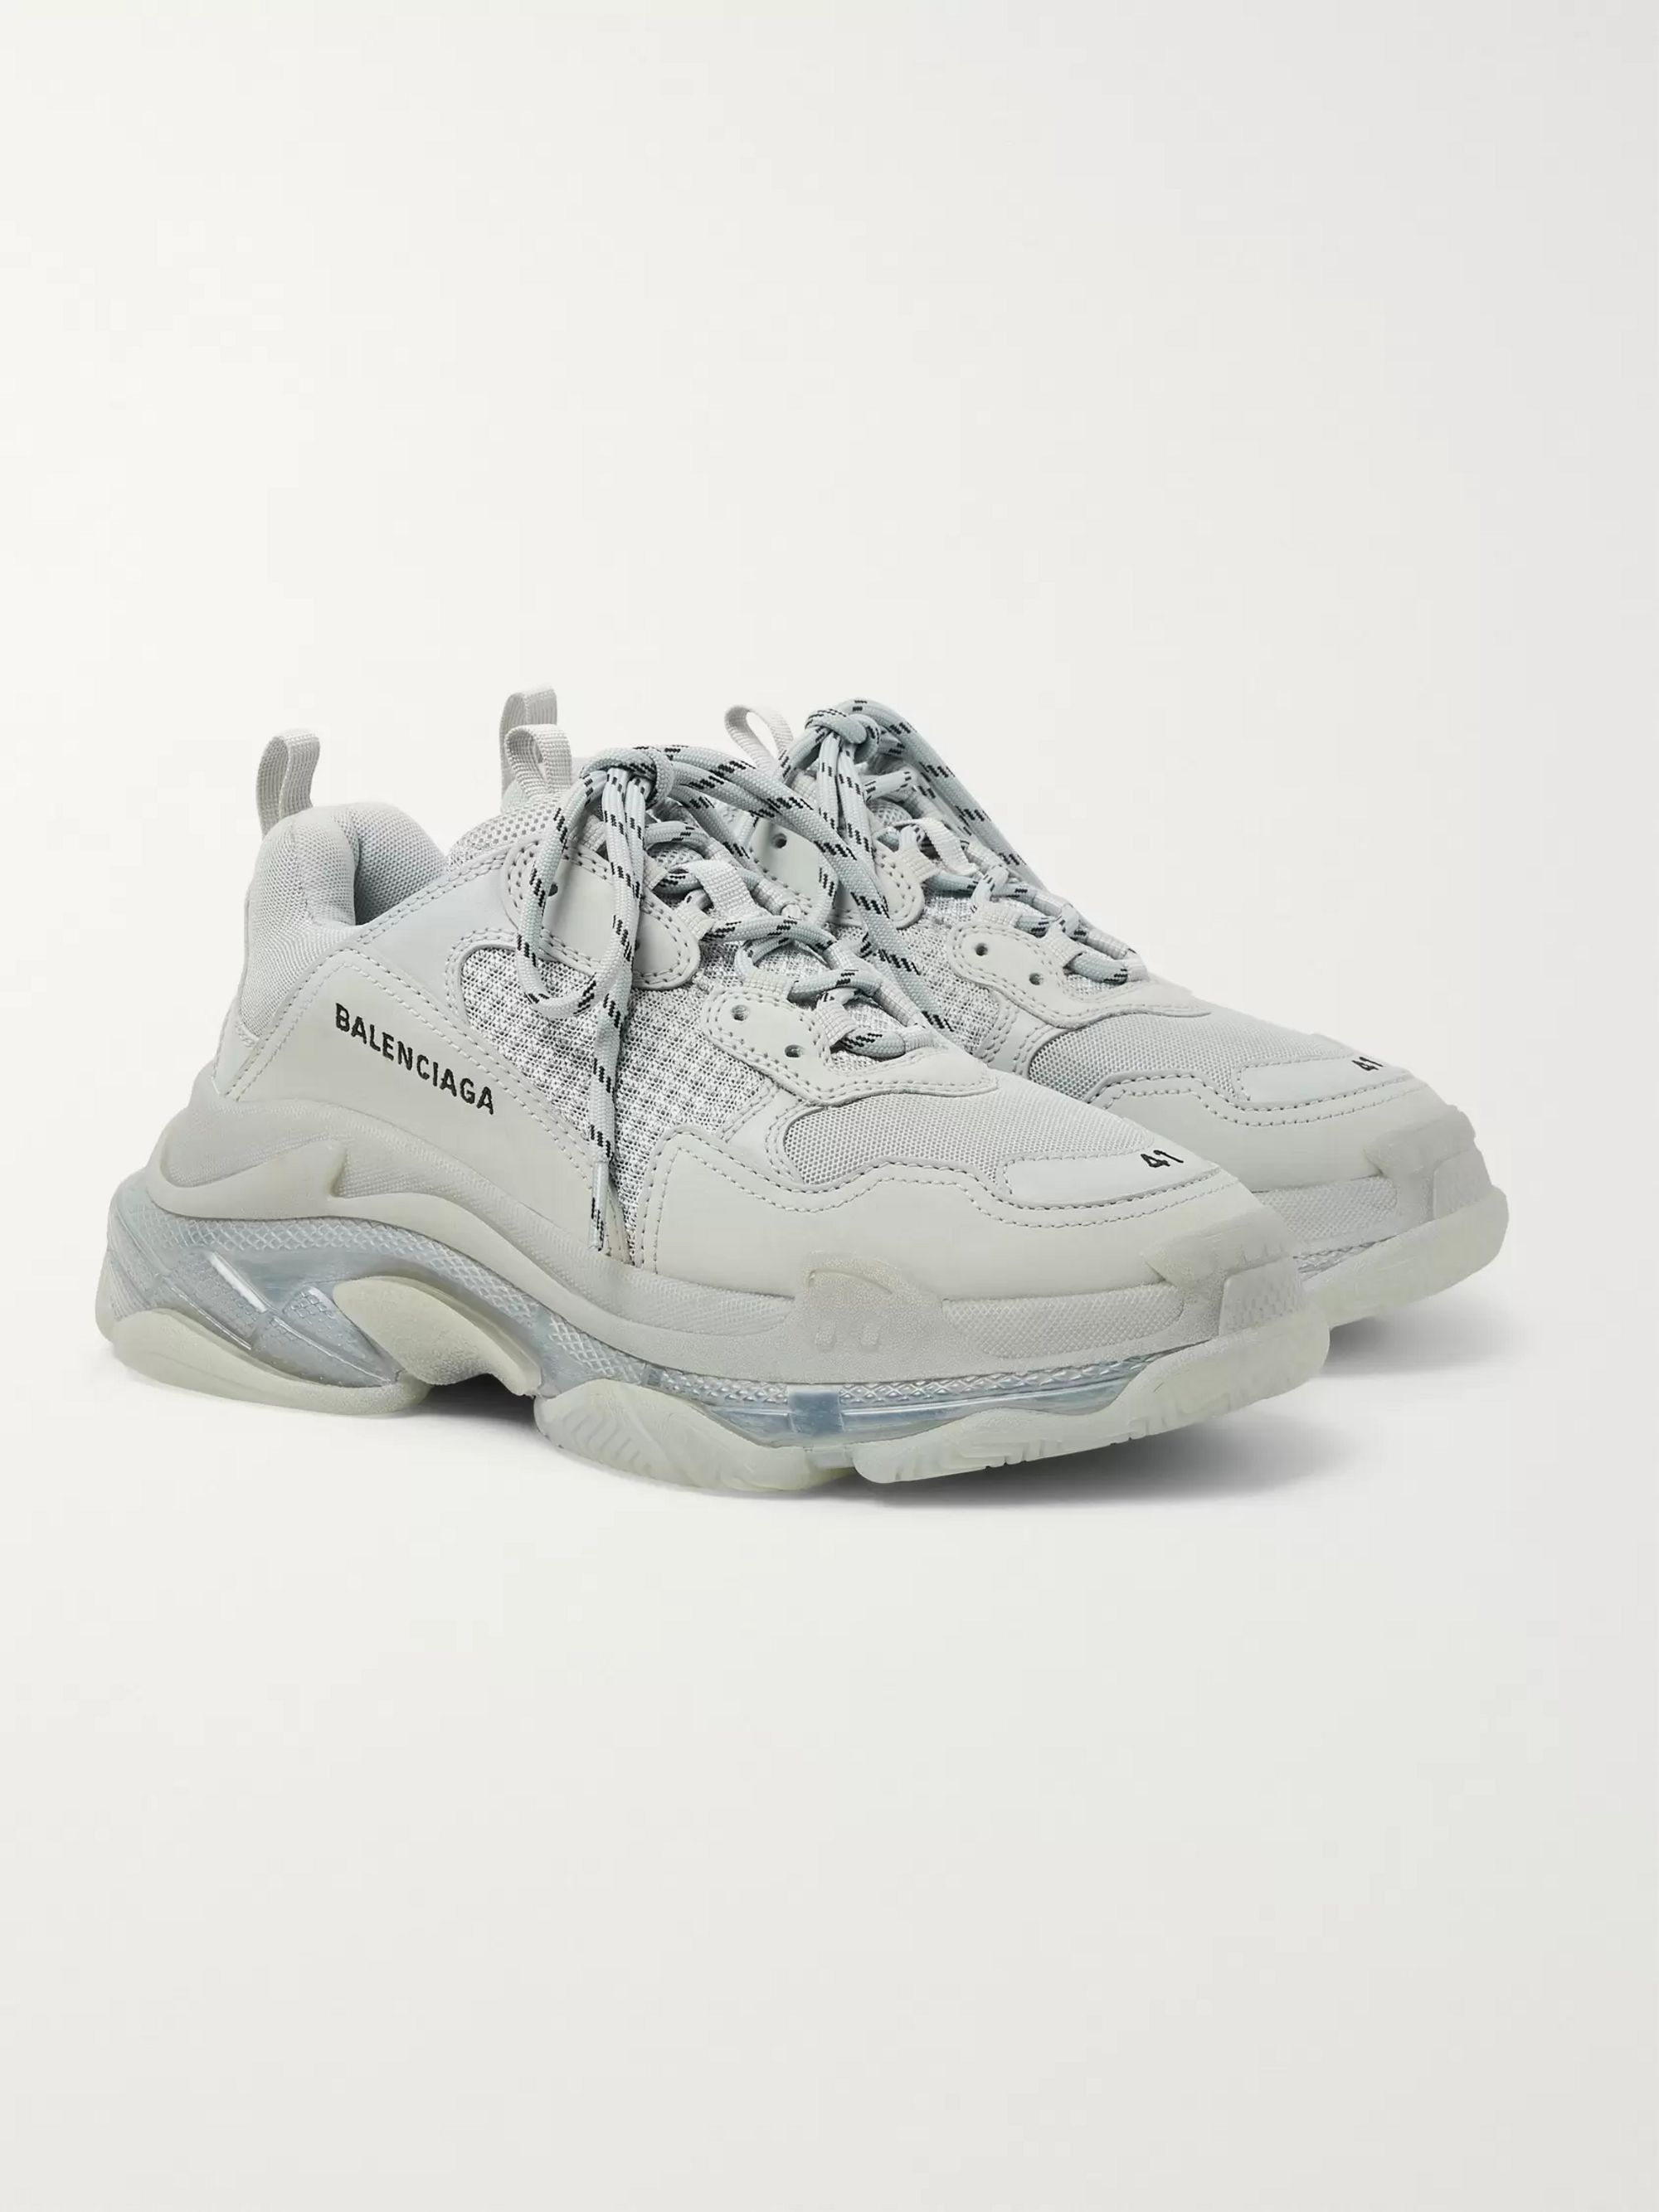 Balenciaga Sneakers Black Triple S Mount Mercy University